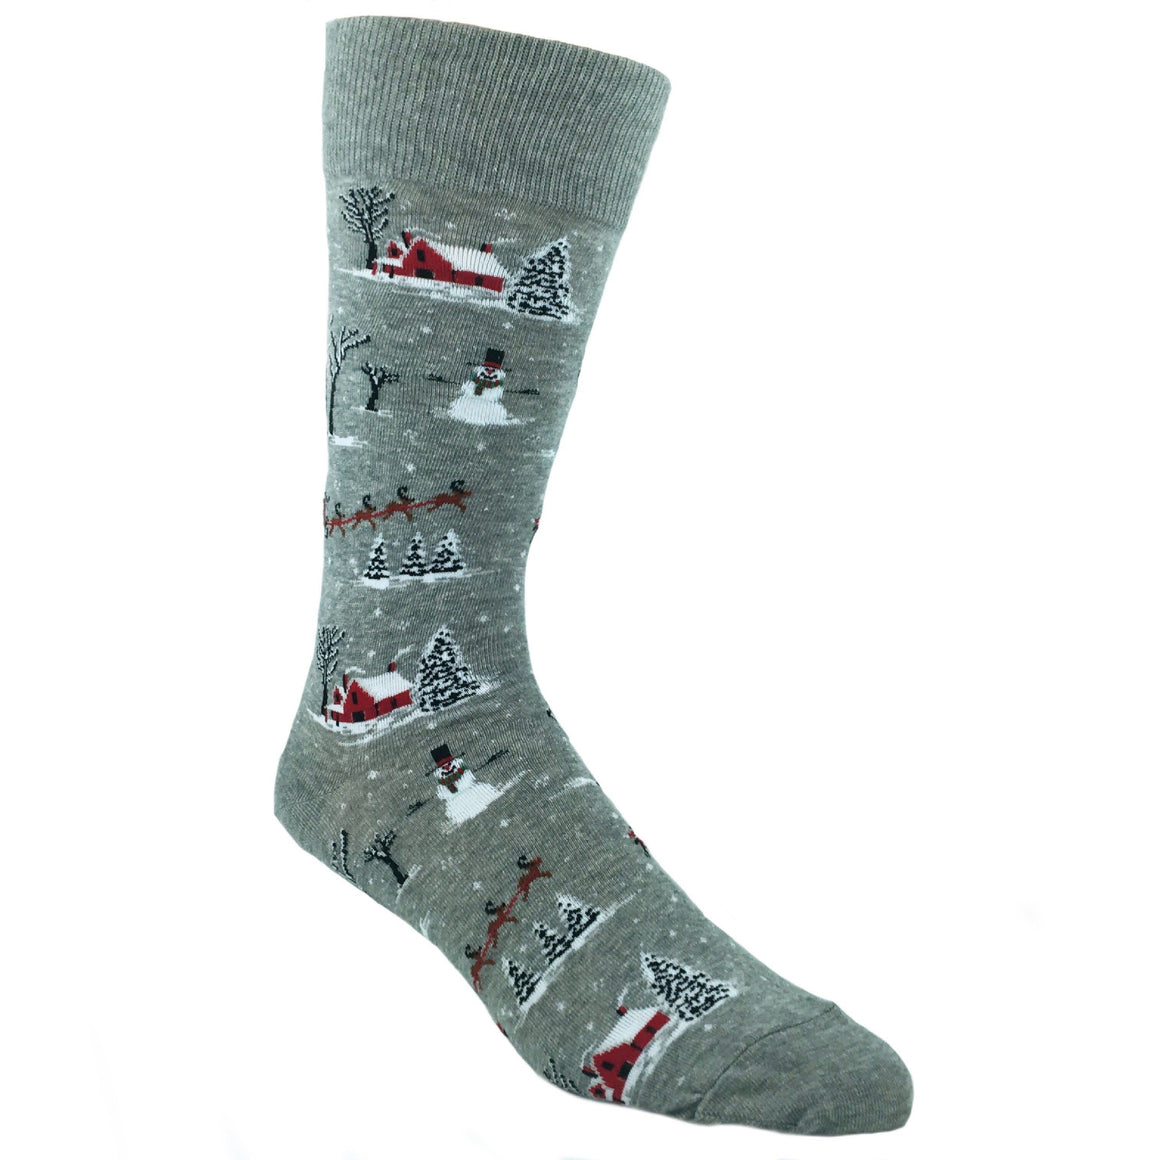 Christmas Scene Socks in Grey by Hot Sox - The Sock Spot